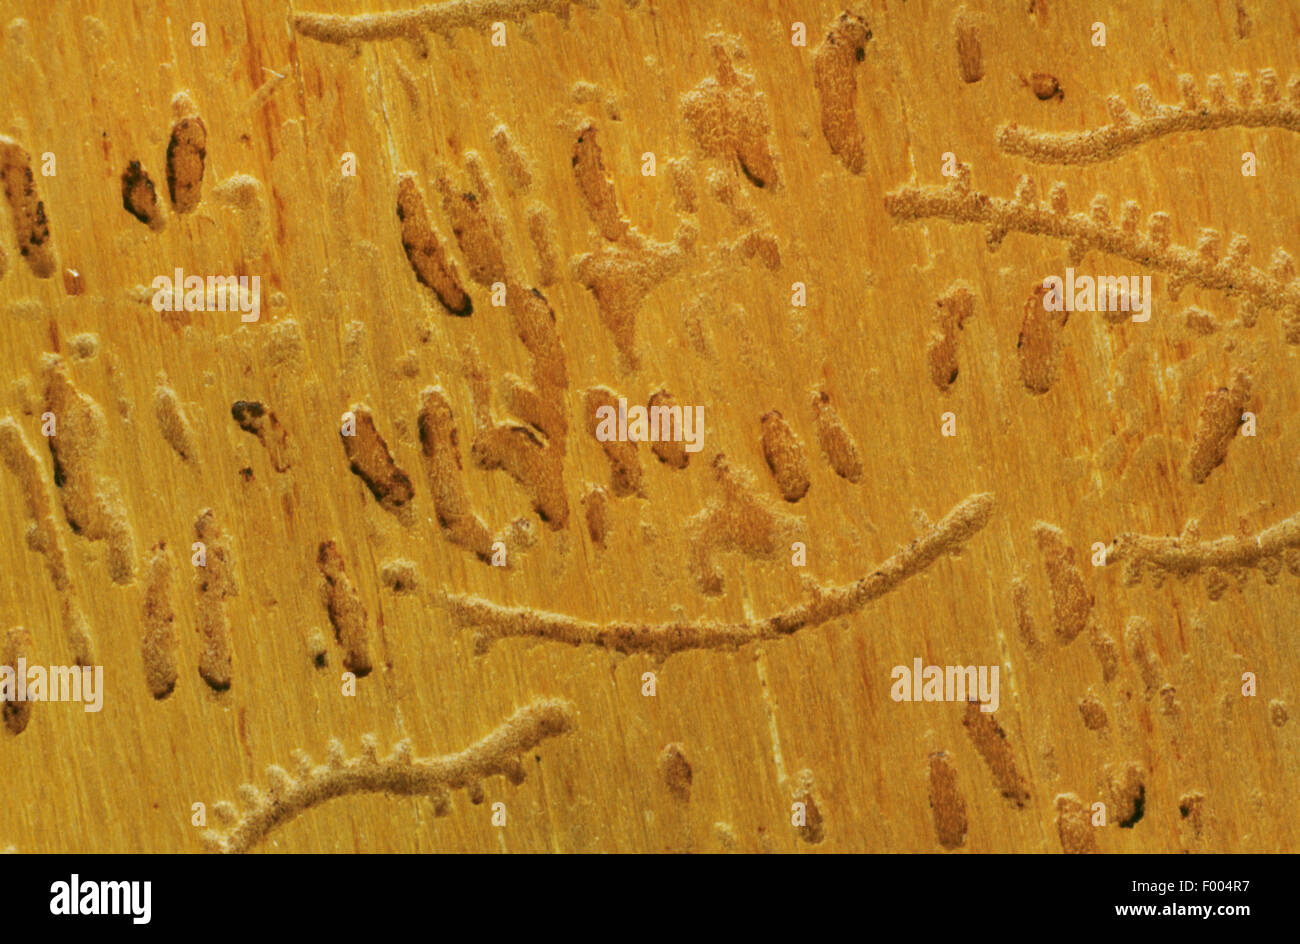 six-dentated bark beetle (Pityogenes chalcographus), burrows in wood - Stock Image